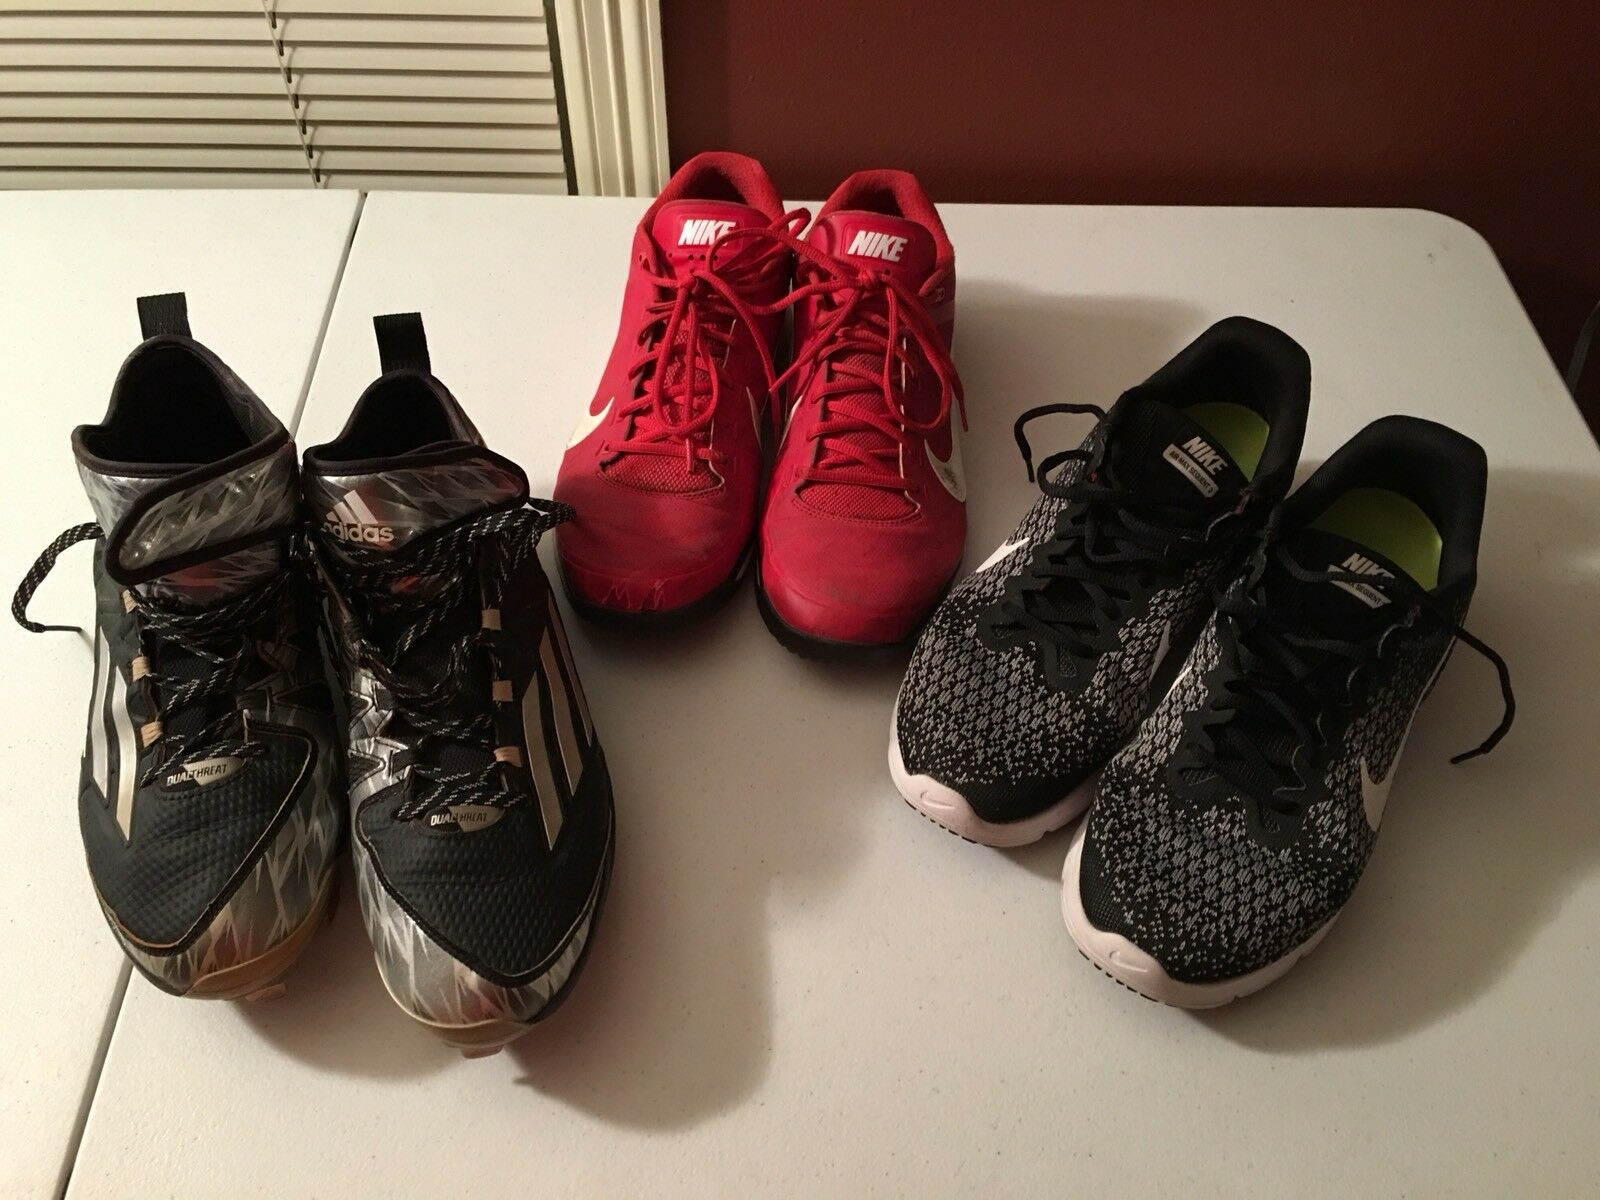 Wild casual shoes NIKE and ADIDAS 3 PAIRS OF SIZE 11 ATHLETIC SHOES USED